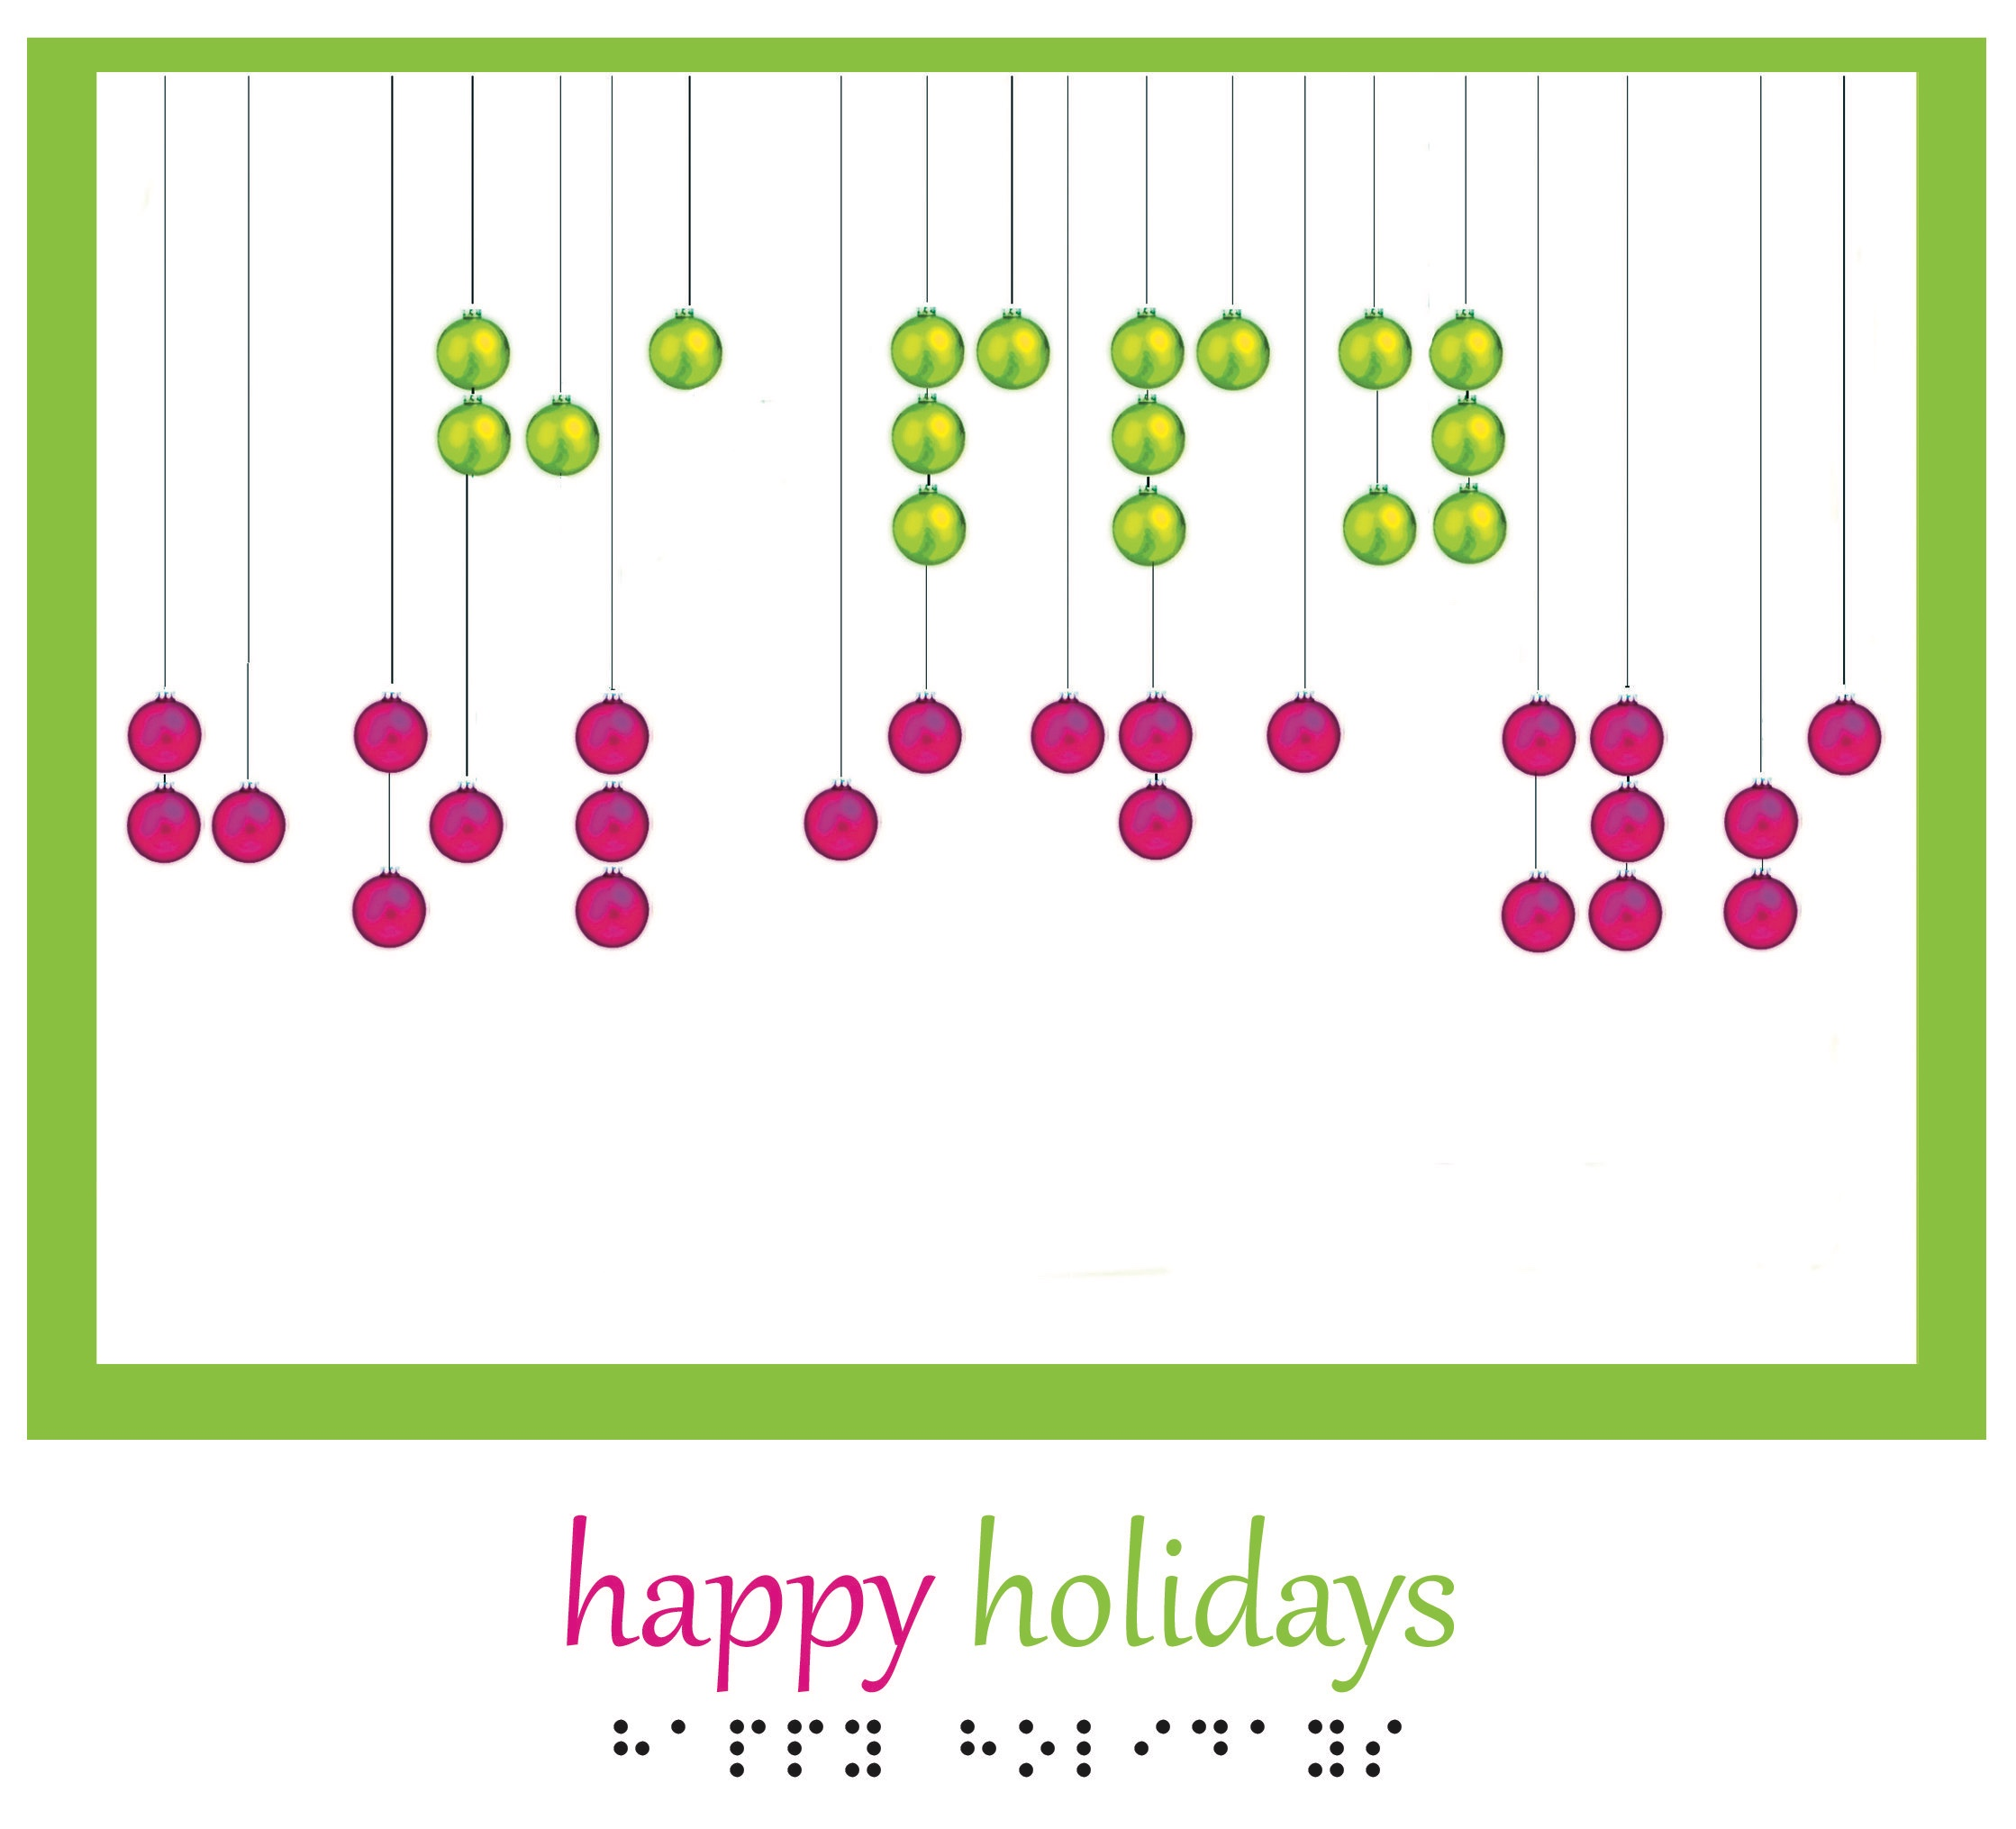 """Happy Holidays"" spelled out in Braille ornaments"